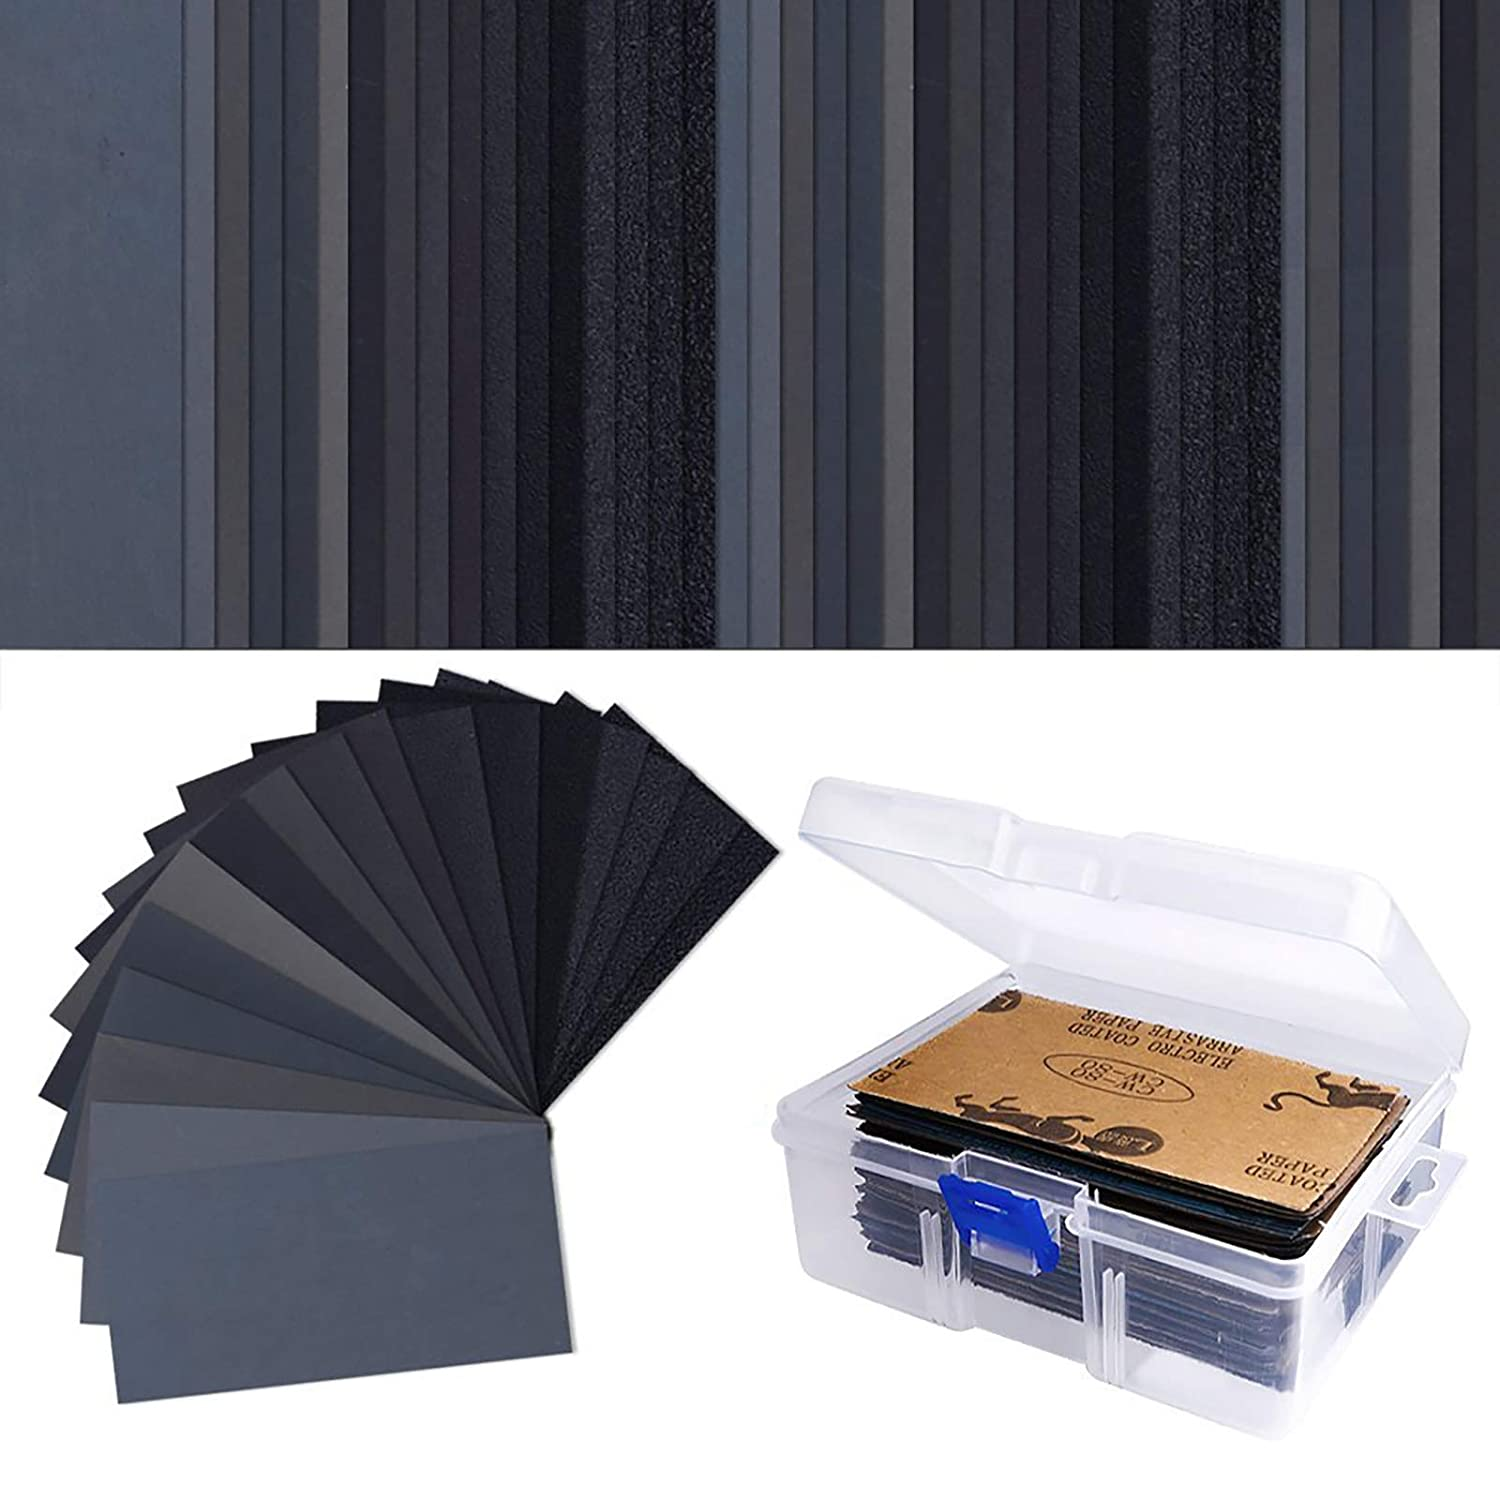 AUSTOR 102 Pcs Wet Dry Sandpaper 60 to 3000 Grit Assortment 3 x 5.5 Inch Abrasive Paper with Free Box for Automotive Sanding, Wood Furniture Finishing